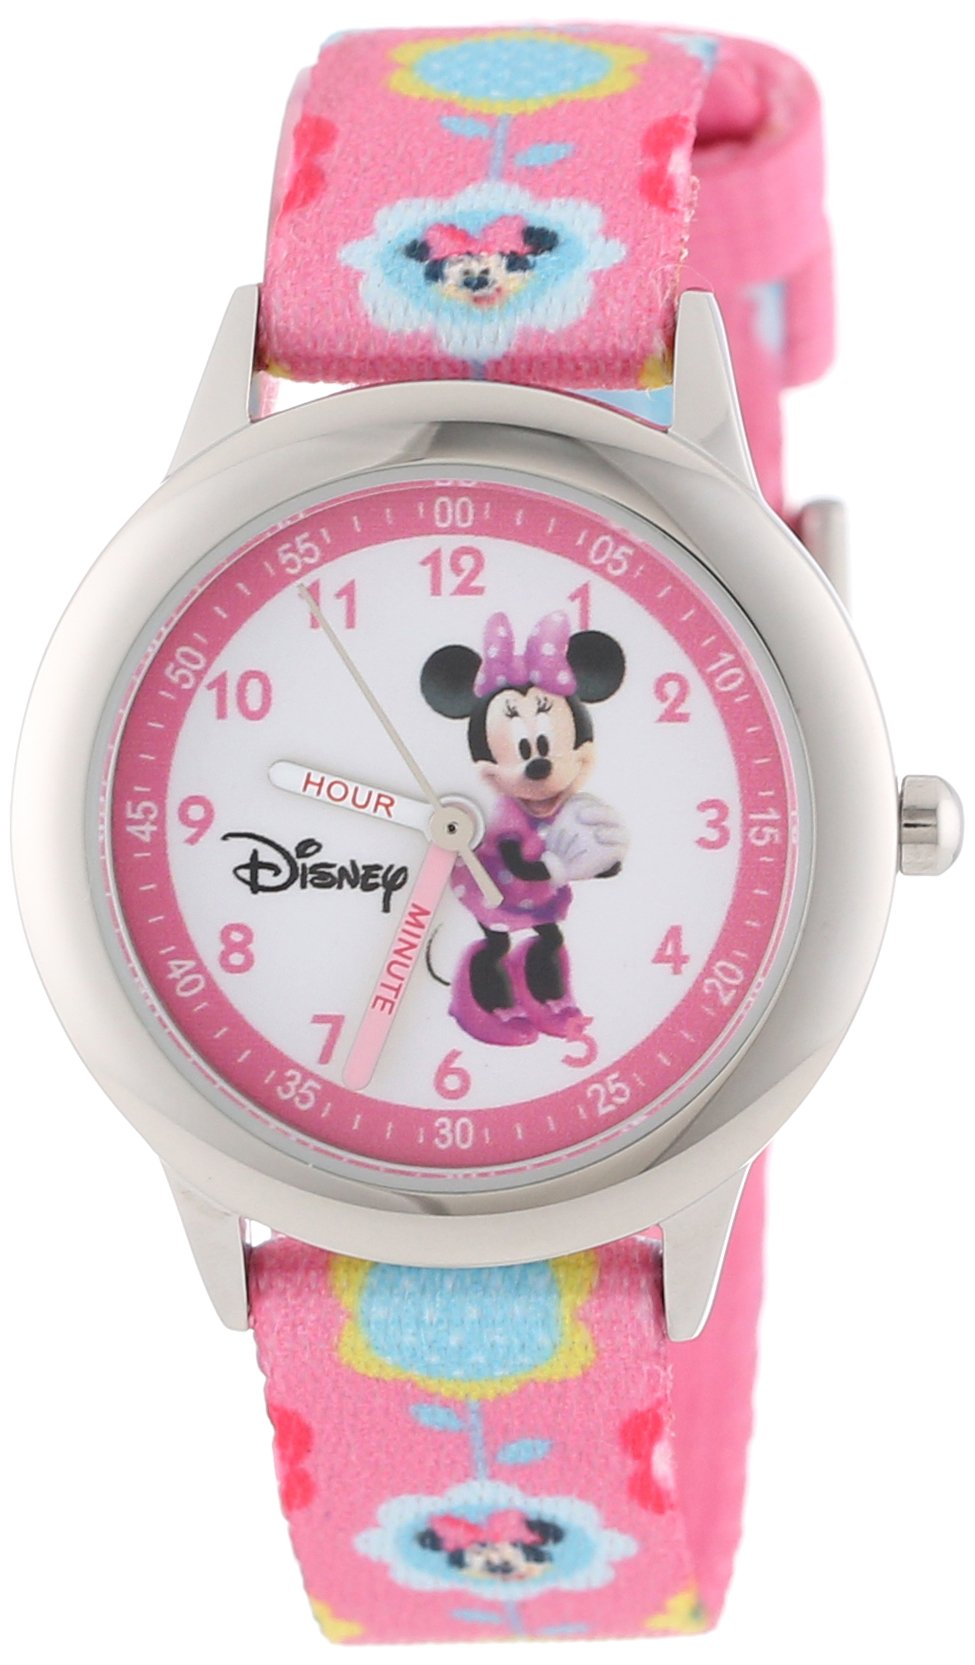 Disney Kids' W000036 Minnie Mouse Time Teacher Stainless Steel Watch by Disney